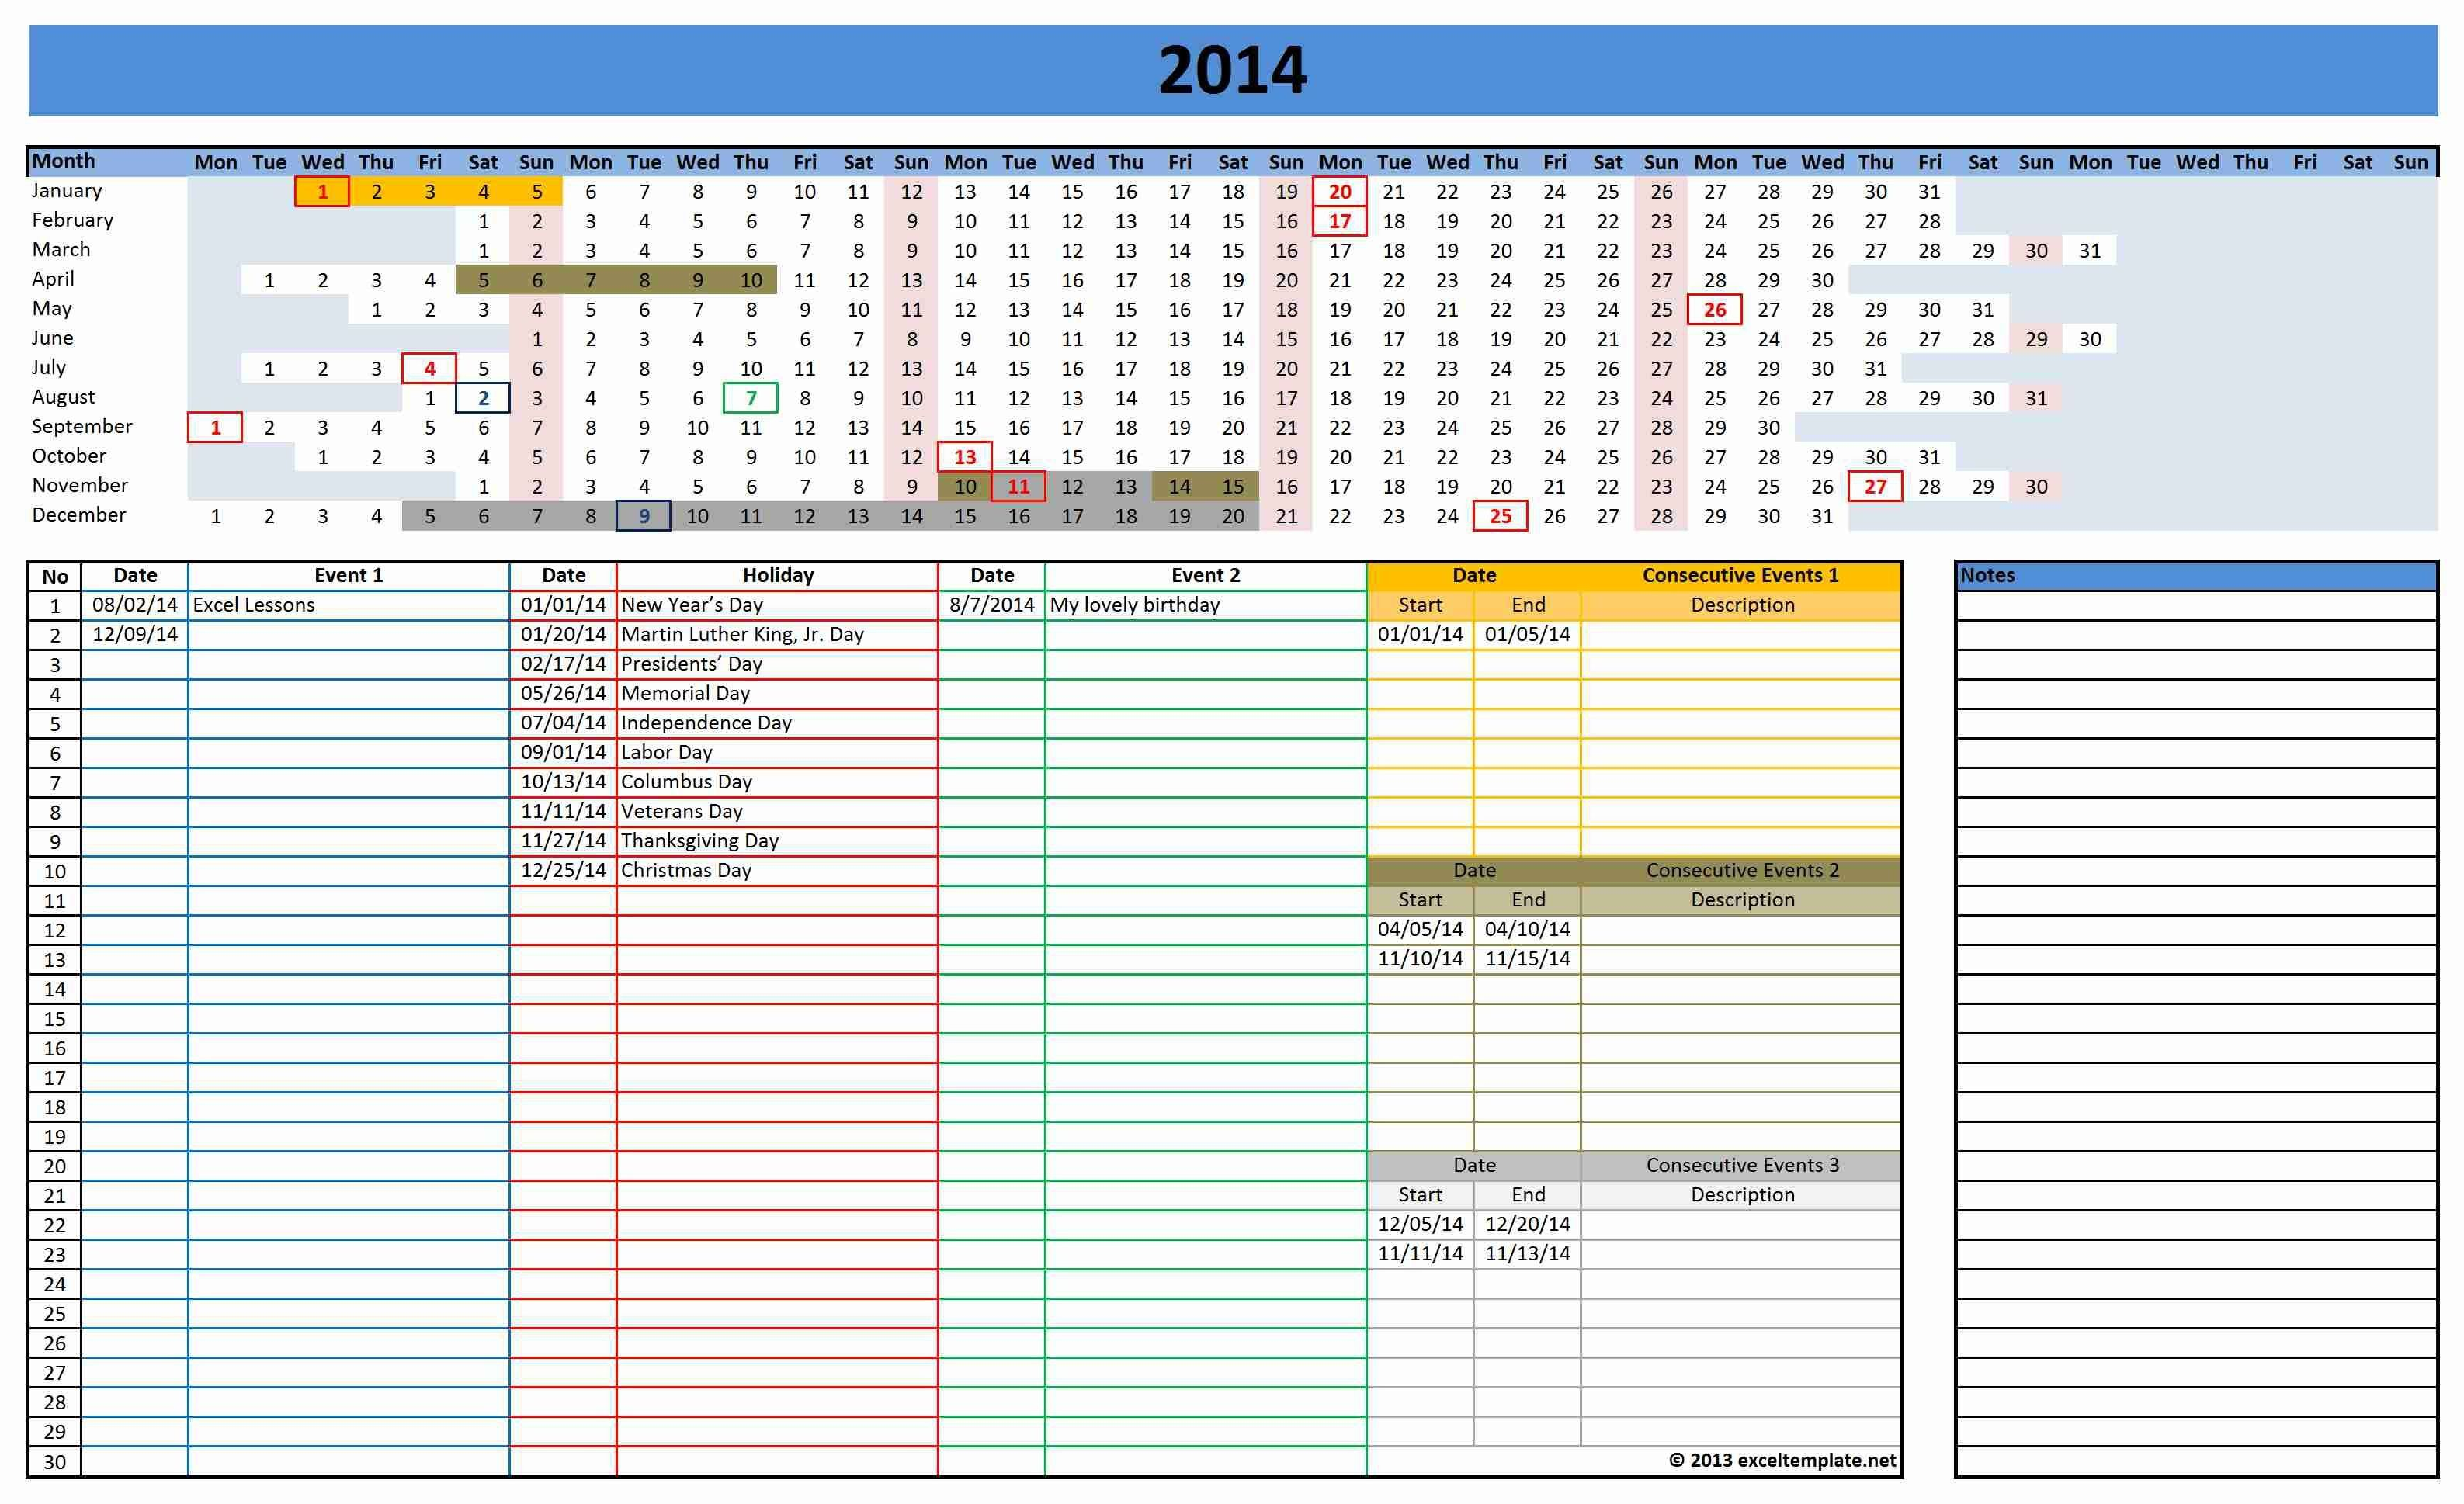 000 Fantastic Free Calendar Template Excel Idea  Monthly 2020 Perpetual 2019Full